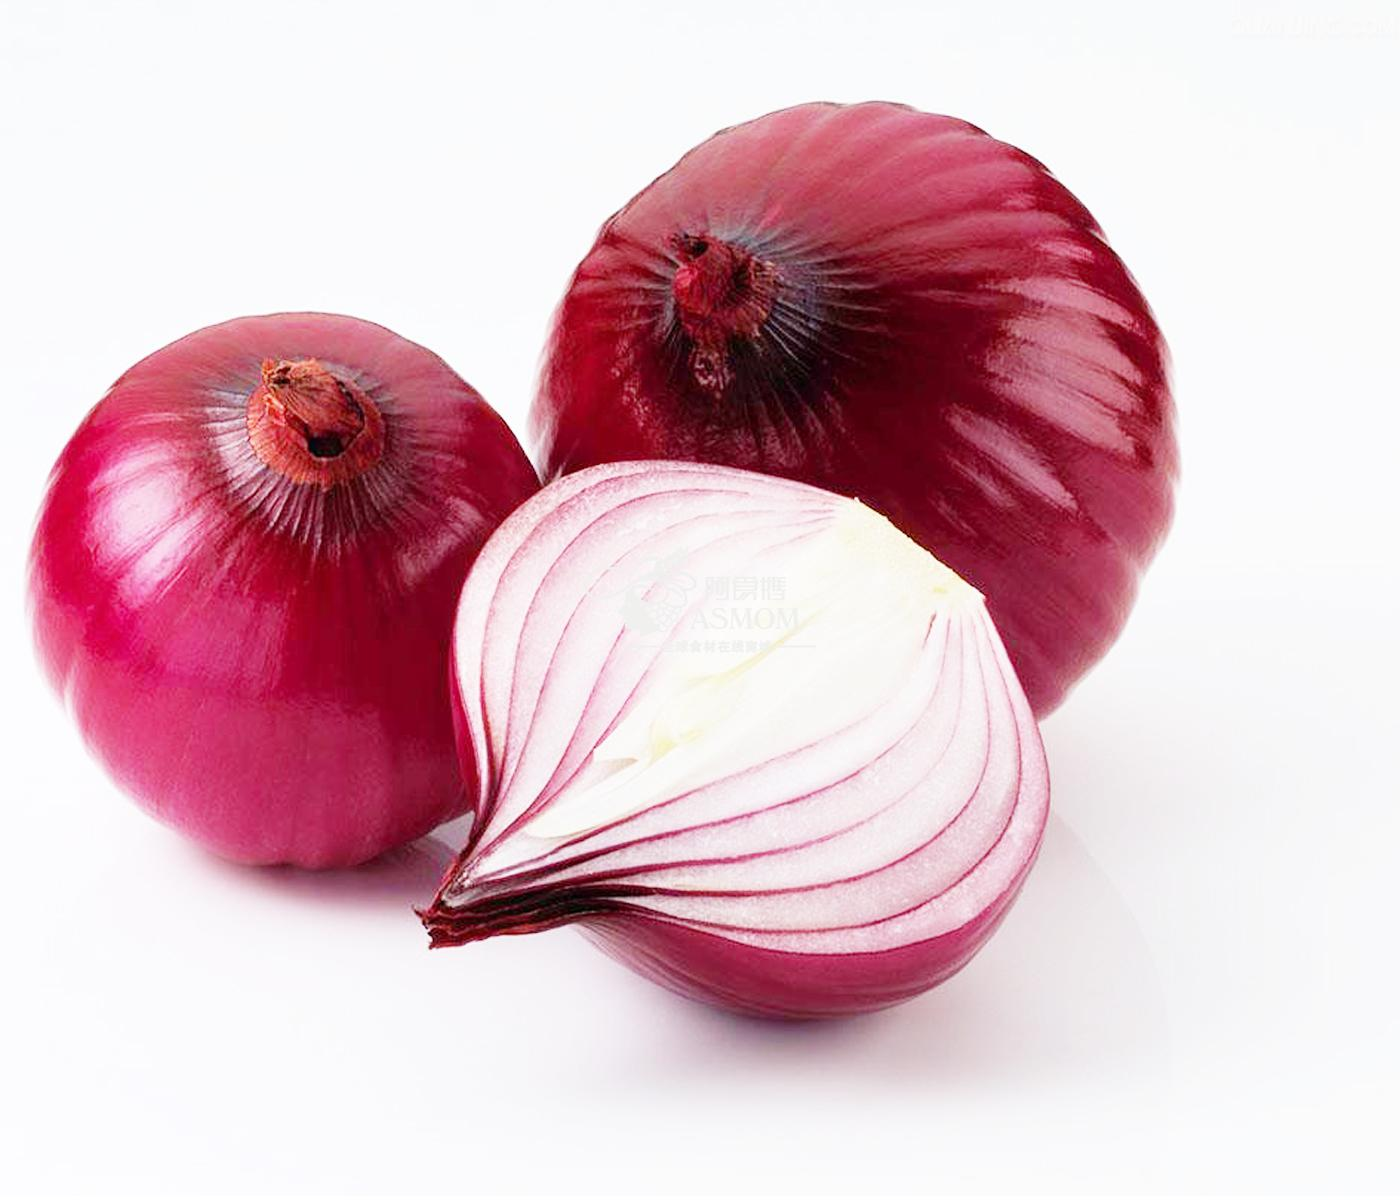 What is onion 19